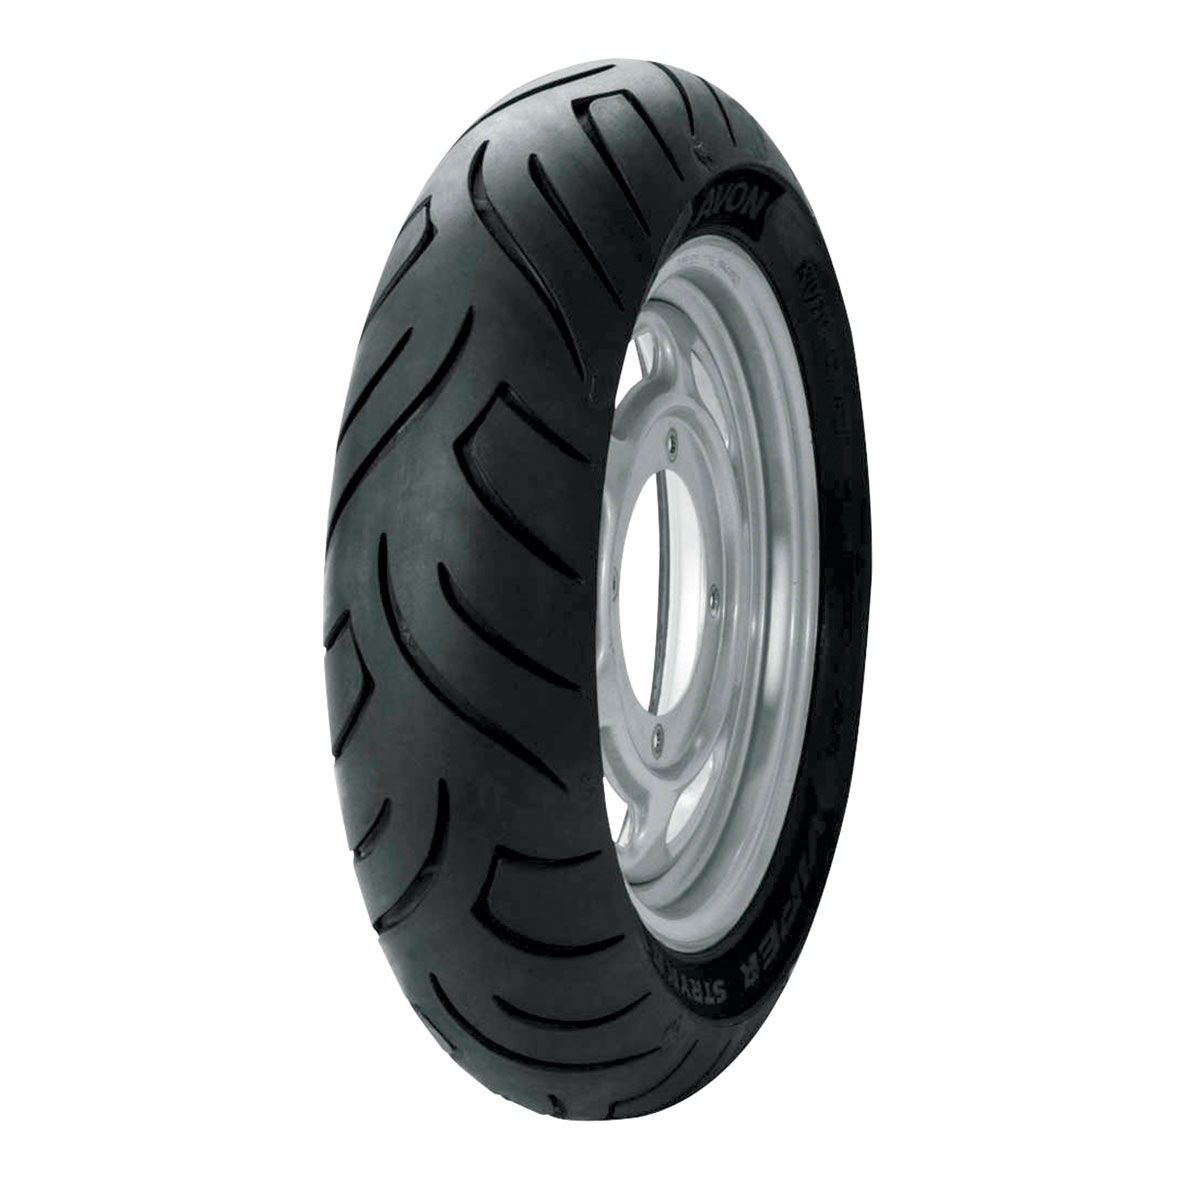 Avon AM63 Viper Stryke 140/70-14 Scooter Rear Tire